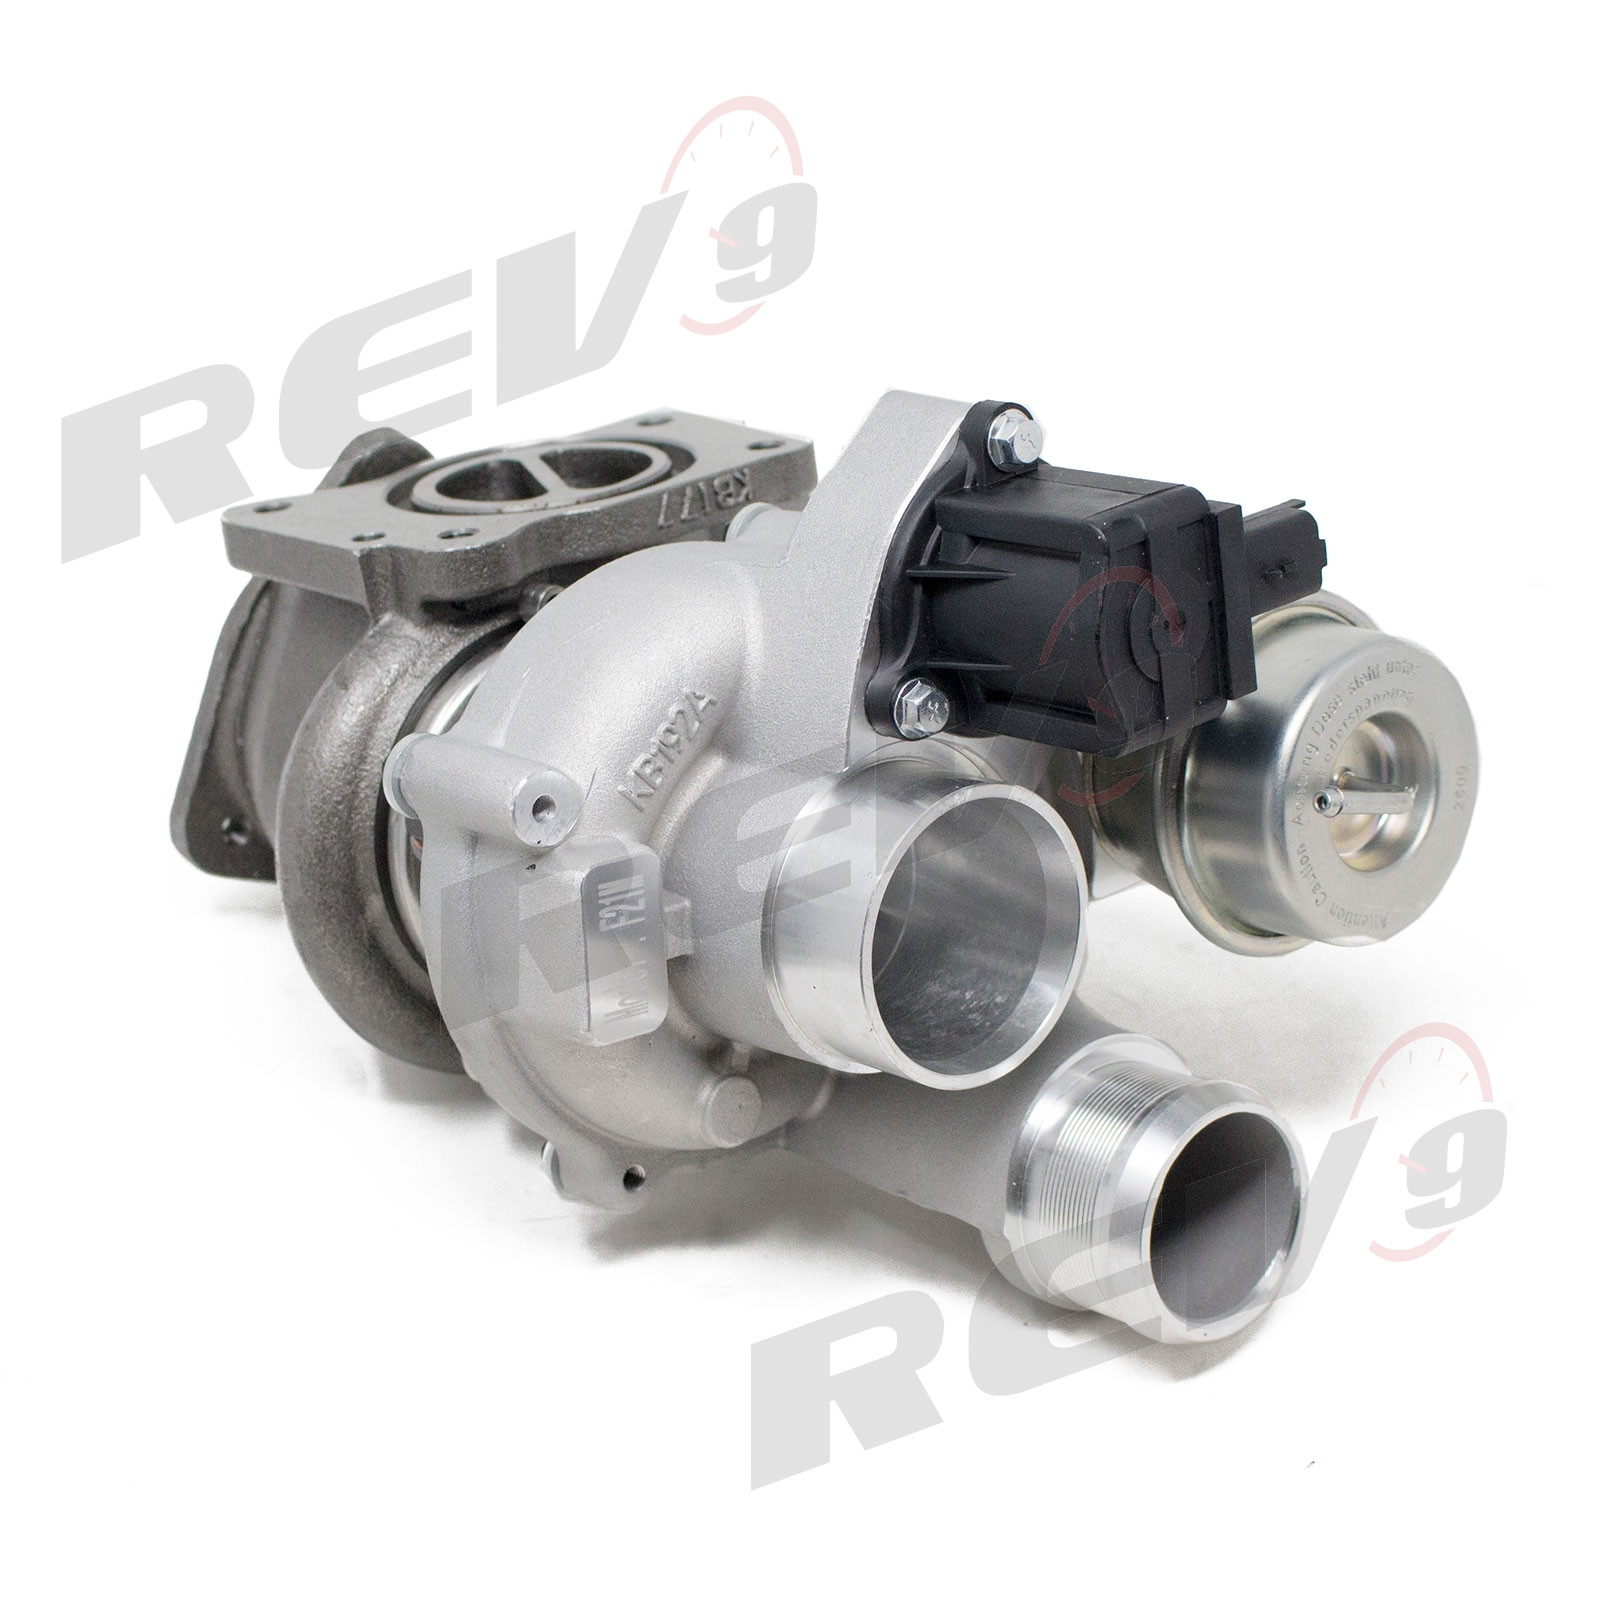 Rev9Power: K04 Hybrid F21M Turbocharger Mini Cooper (R56